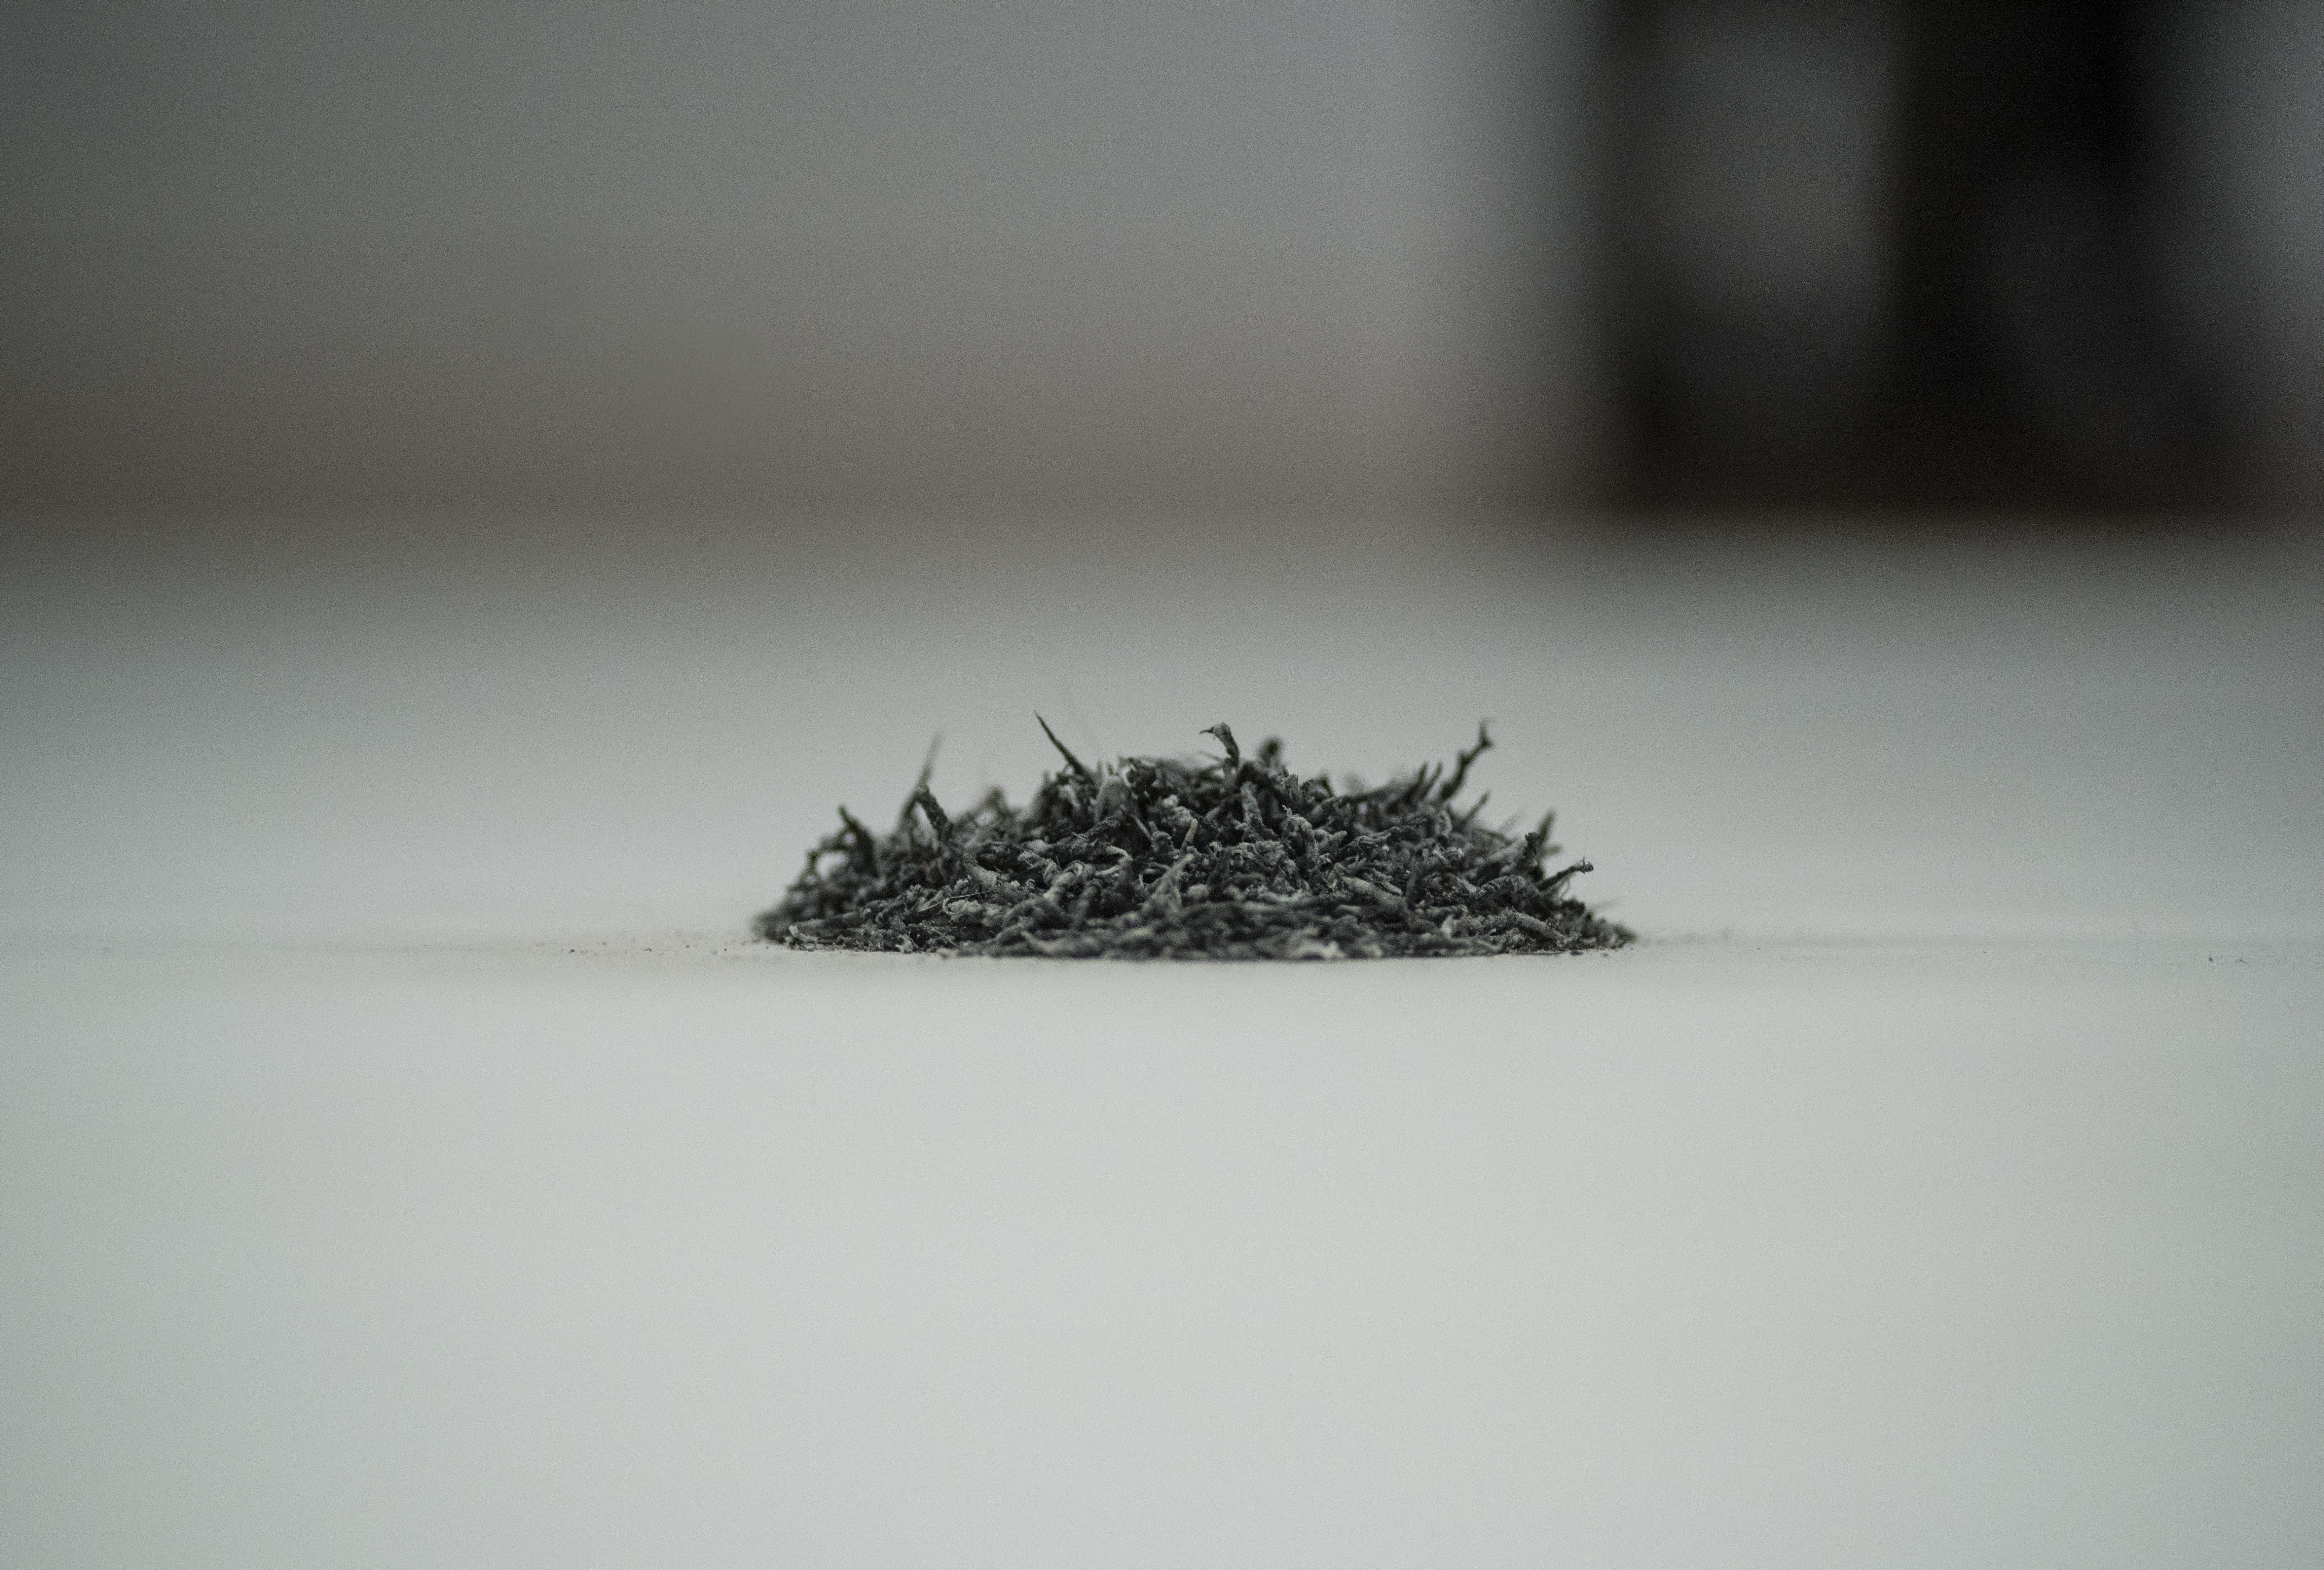 Rubber shavings made during Bettina Fung's performance of